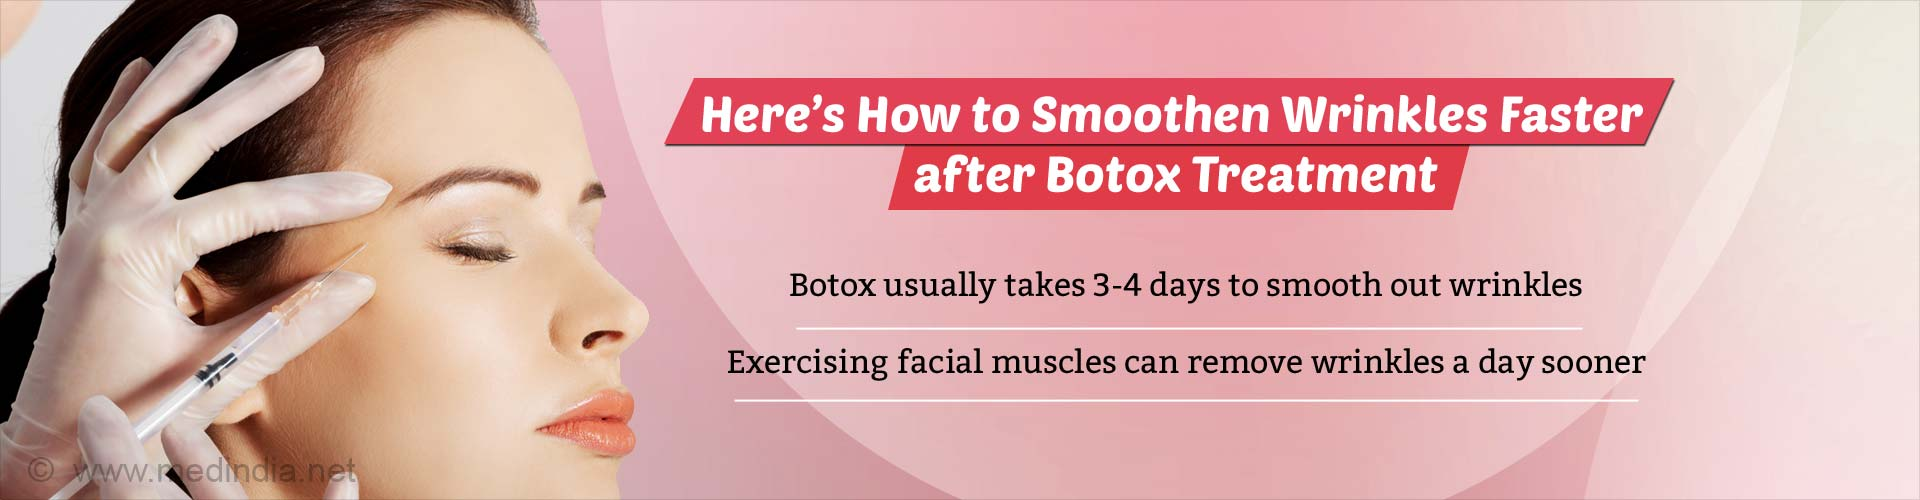 Here's how to smoothen wrinkles faster after Botox treatment. Botox usually takes 3-4 days to smooth out wrinkles. exercising facial muscles can remove wrinkles in just a day.